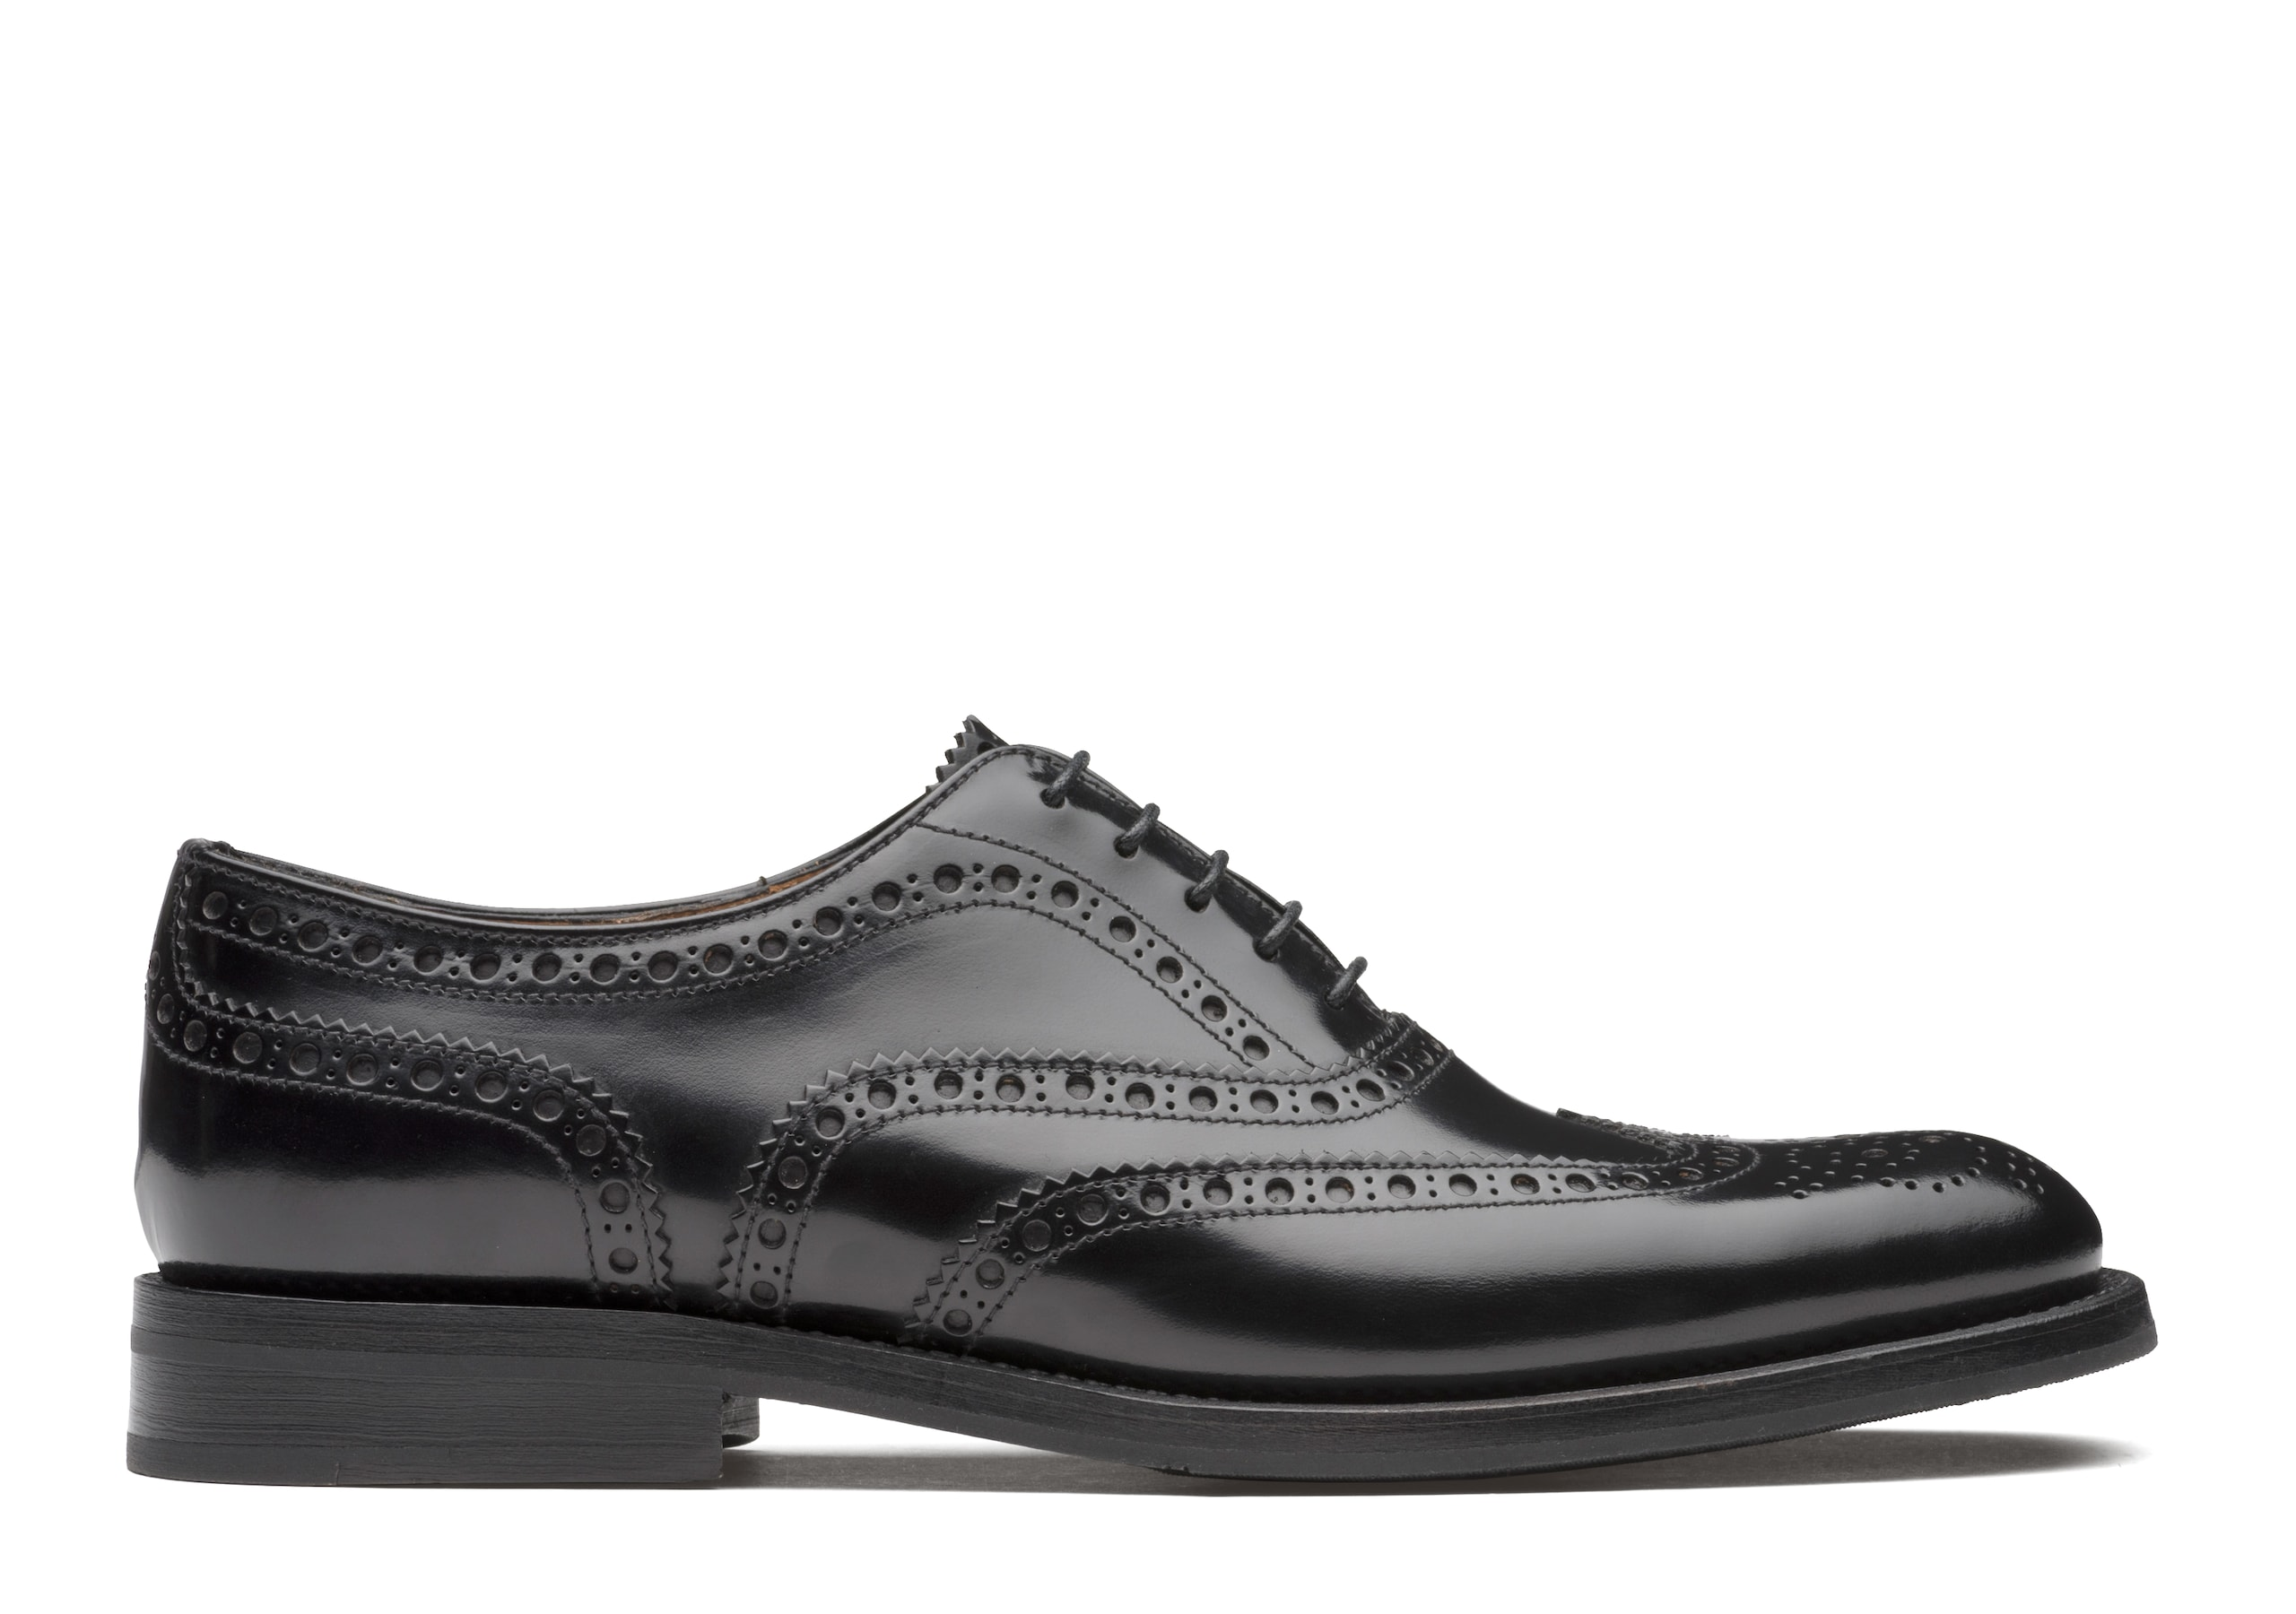 Burwood wg Church's Oxford Brogue in Pelle di Vitello Spazzolato Nero